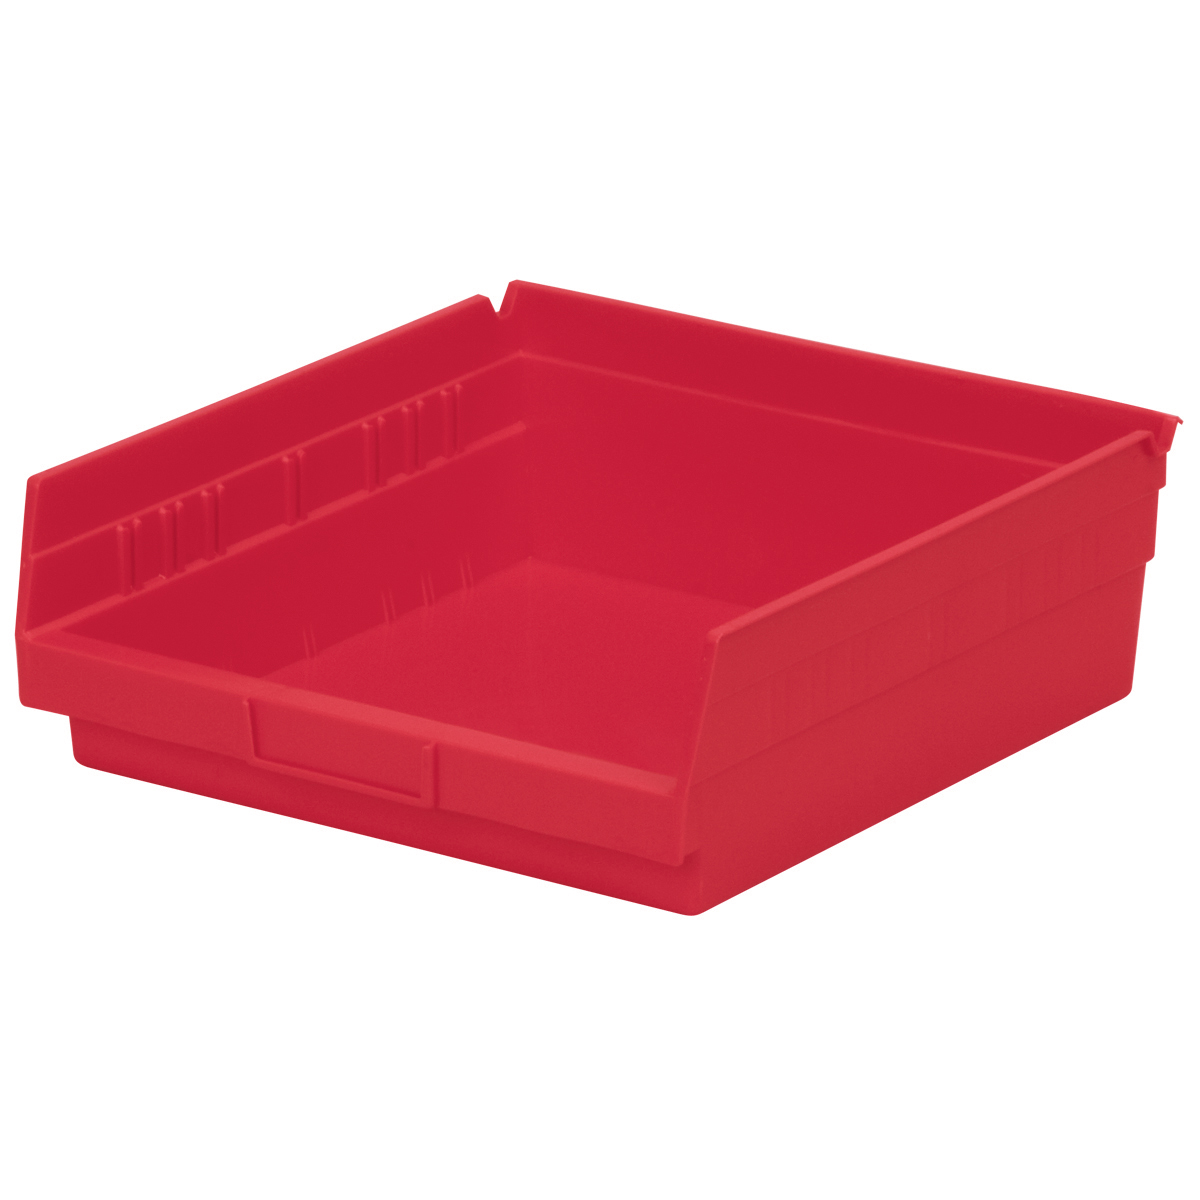 Akro-Mils Shelf Bin 11-5/8D x 11-1/8W x 4H Red  12 pack